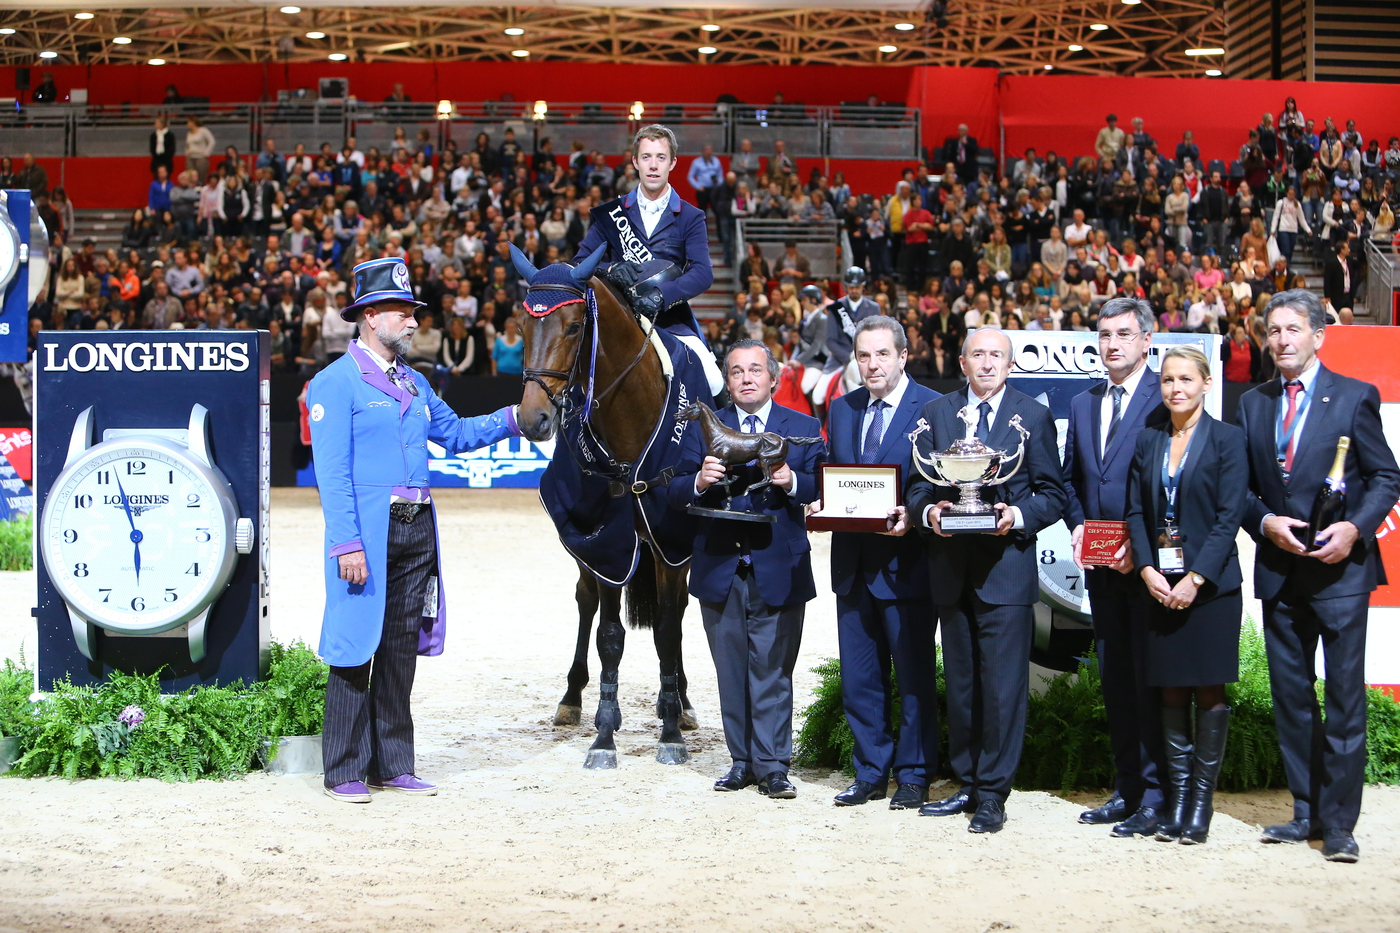 Longines Show Jumping Event: Longines  – Official Timekeeper of Equita'Lyon 7